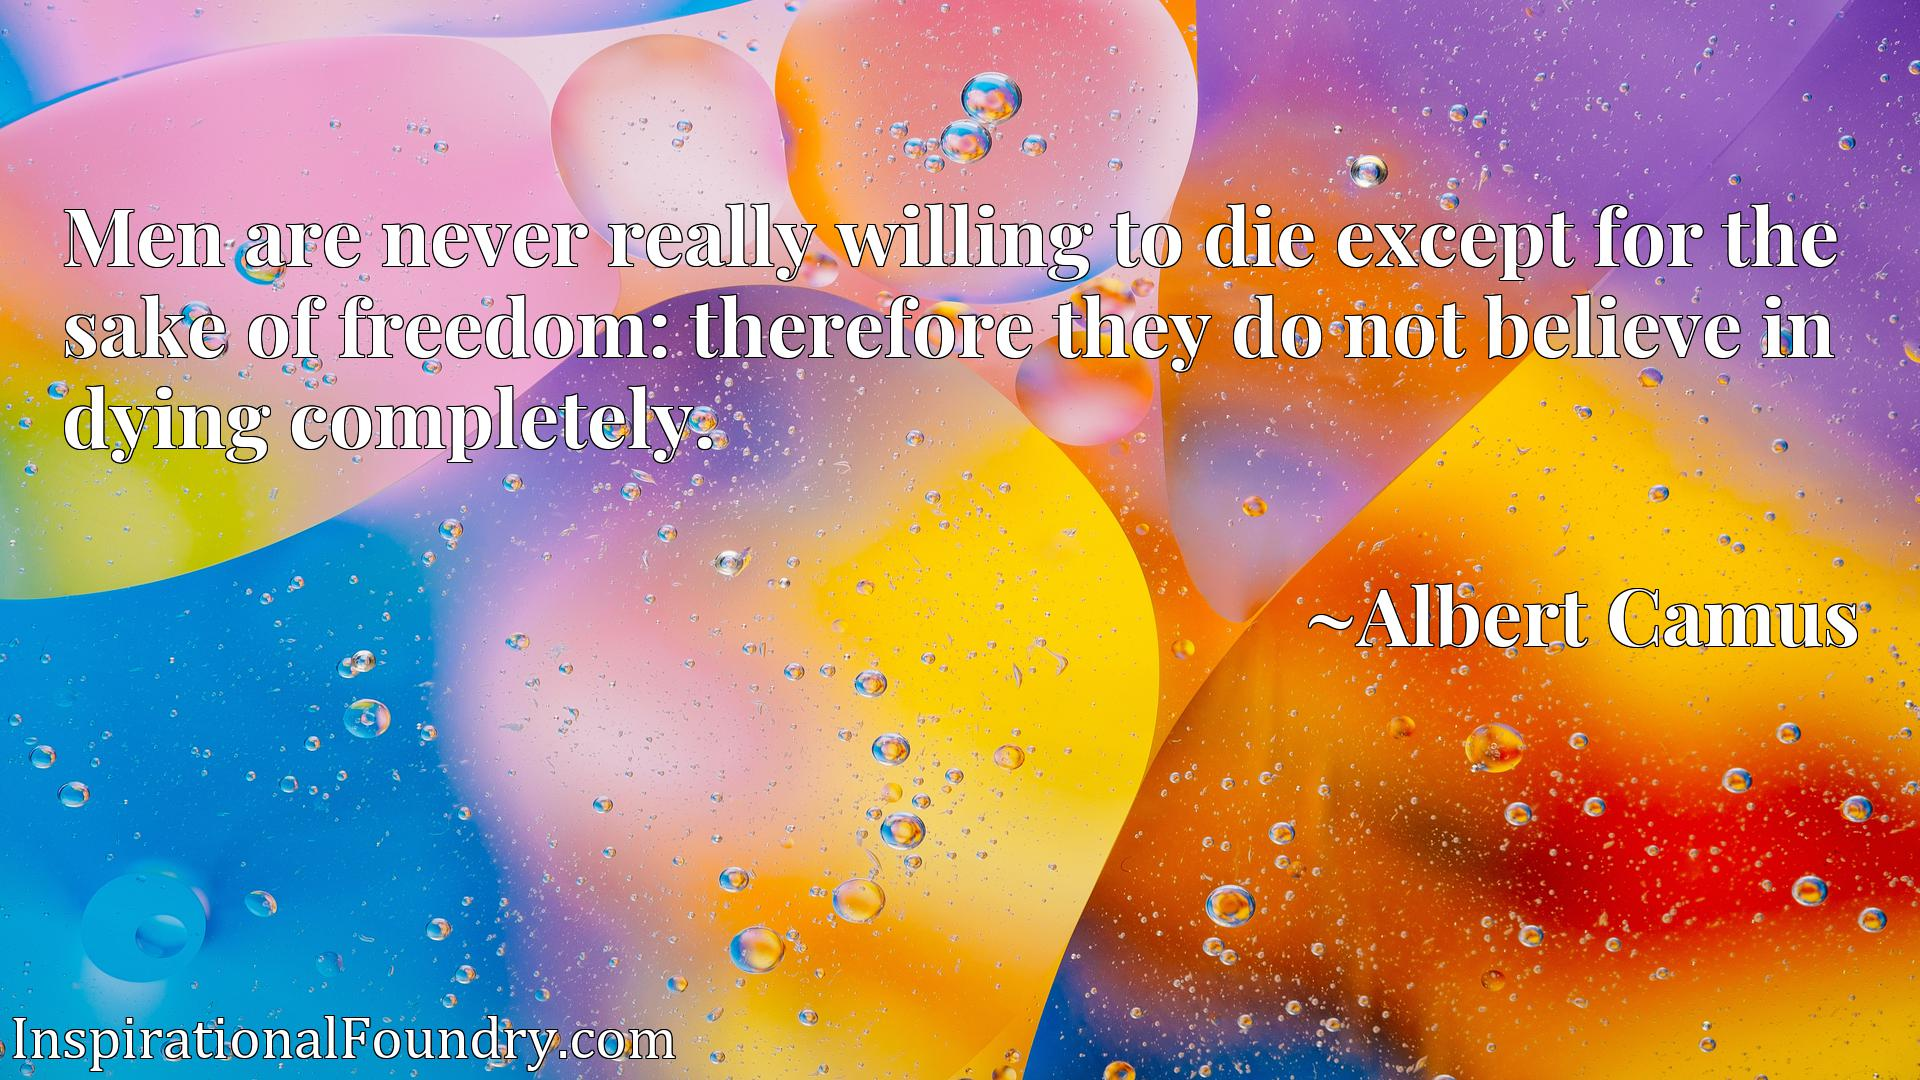 Men are never really willing to die except for the sake of freedom: therefore they do not believe in dying completely.